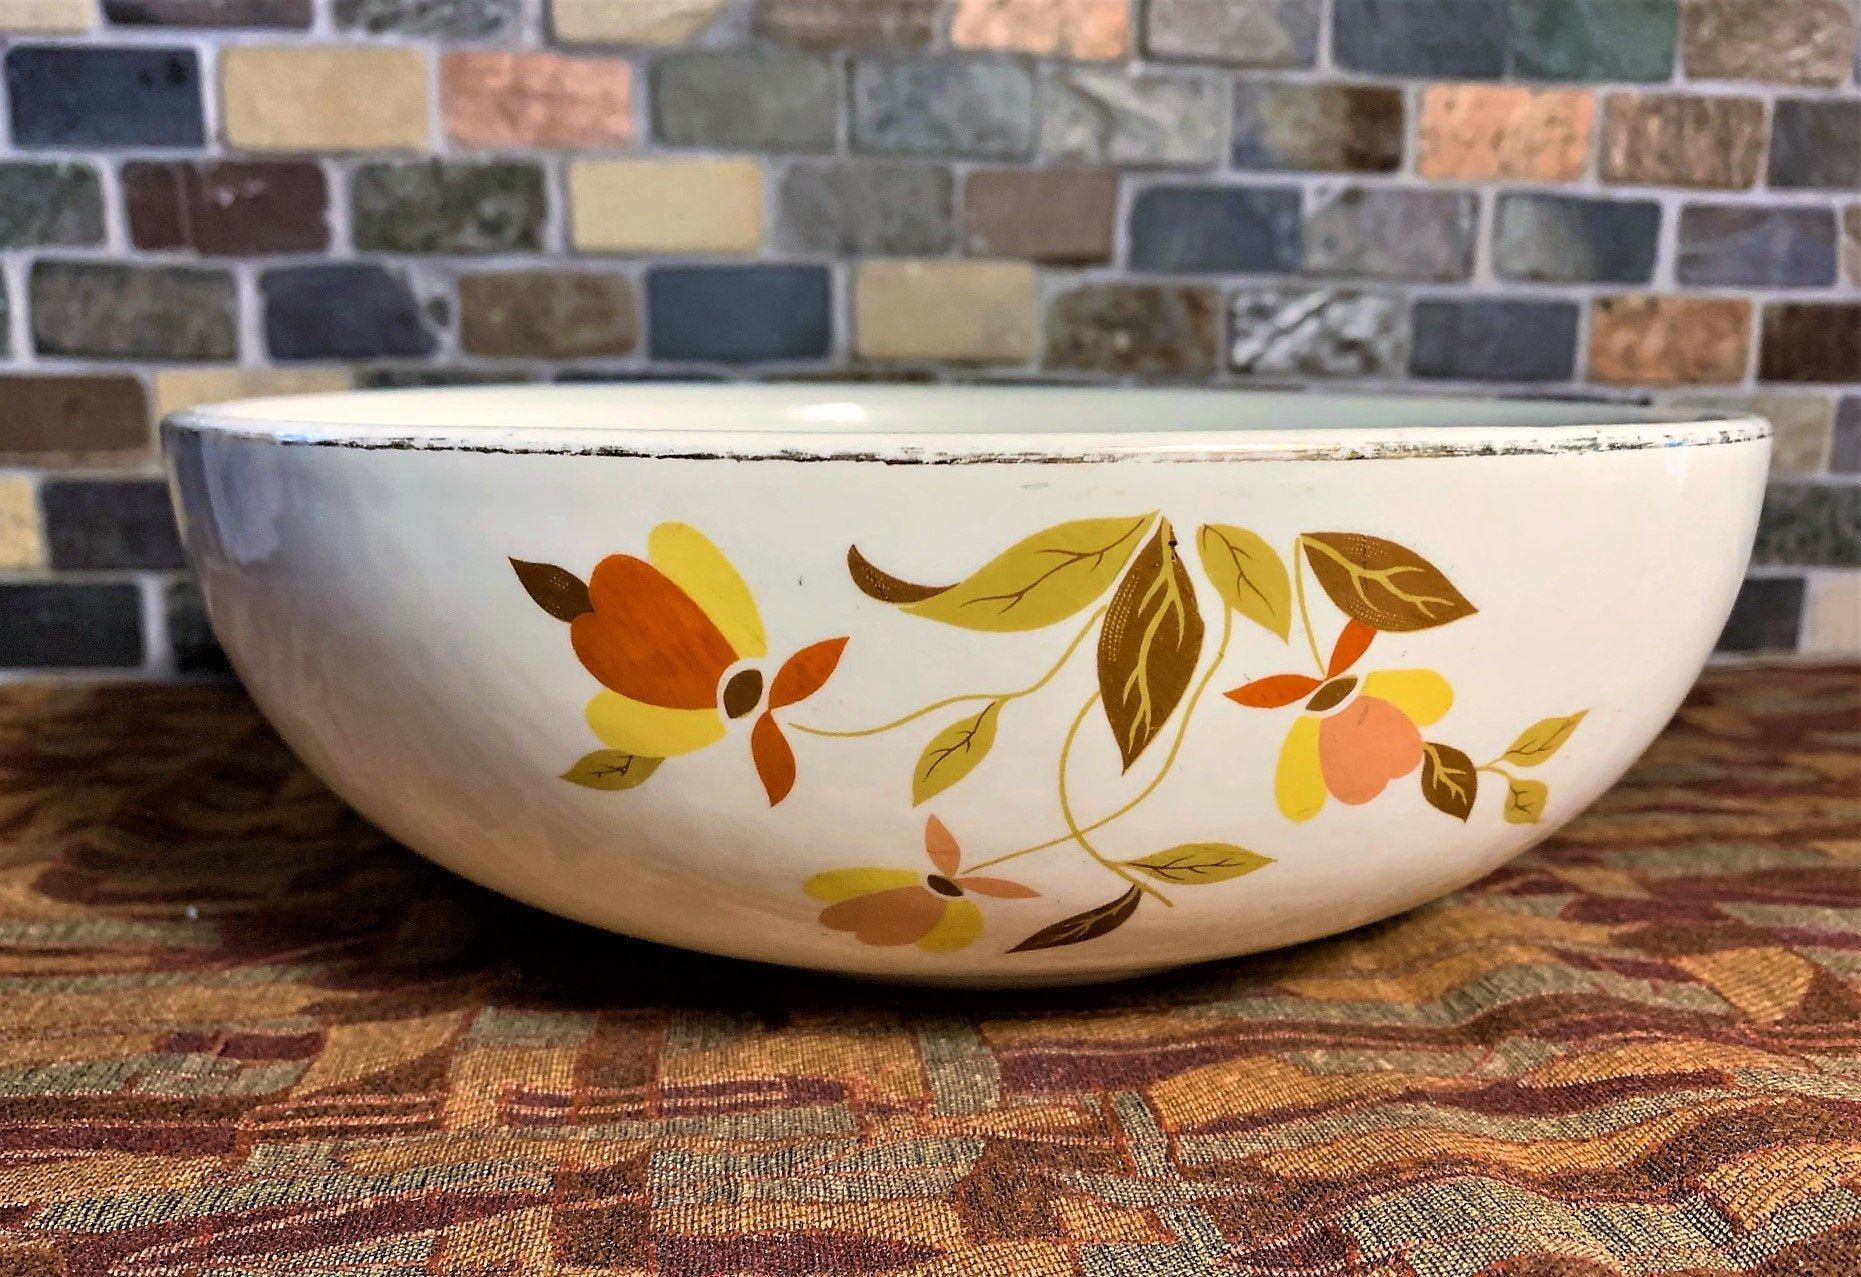 Hall S Superior Autumn Leaf 9 Salad Serving Bowl Etsy In 2021 Fall Dinnerware Autumn Leaves Jewel Tea Dishes